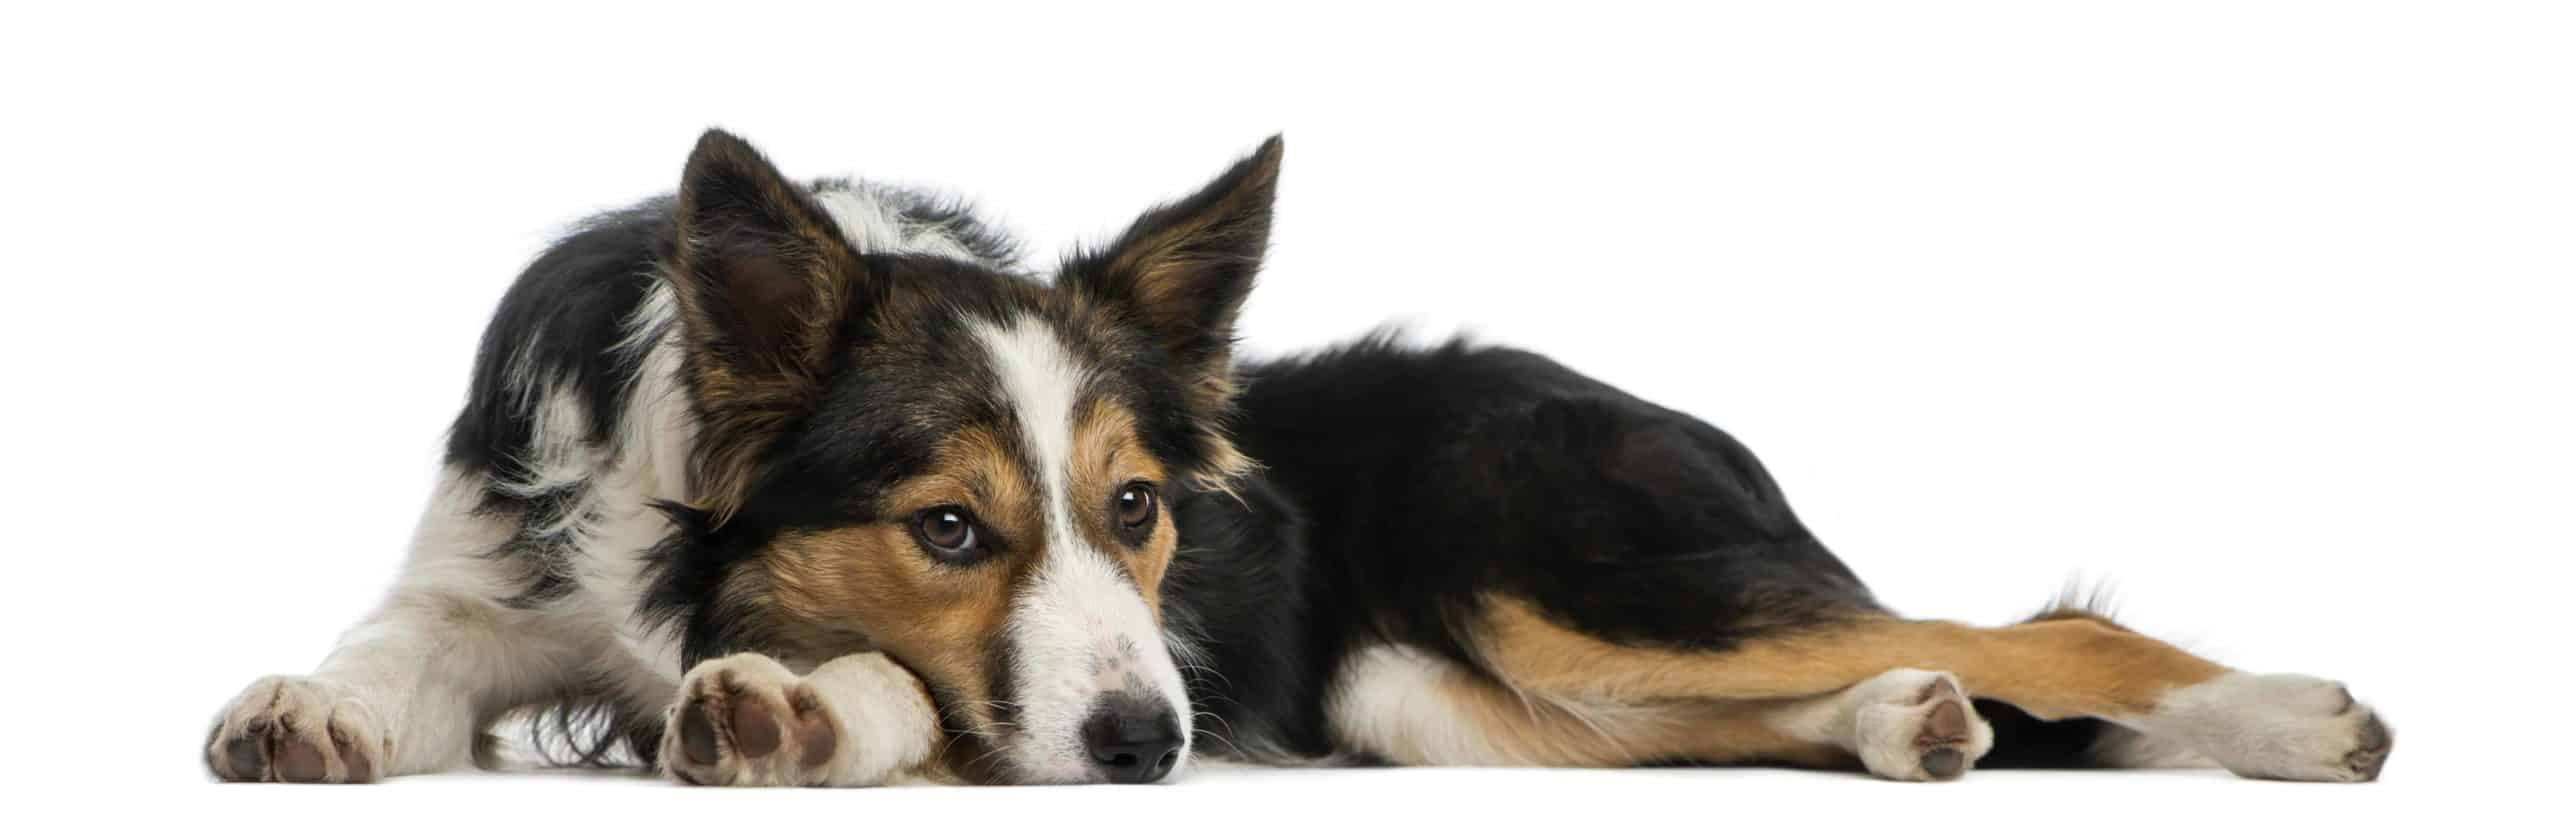 Sad border collie. Help your dog recover after illness, surgery, disease, or even a tummy bug. Give your dog the TLC it needs to feel better.